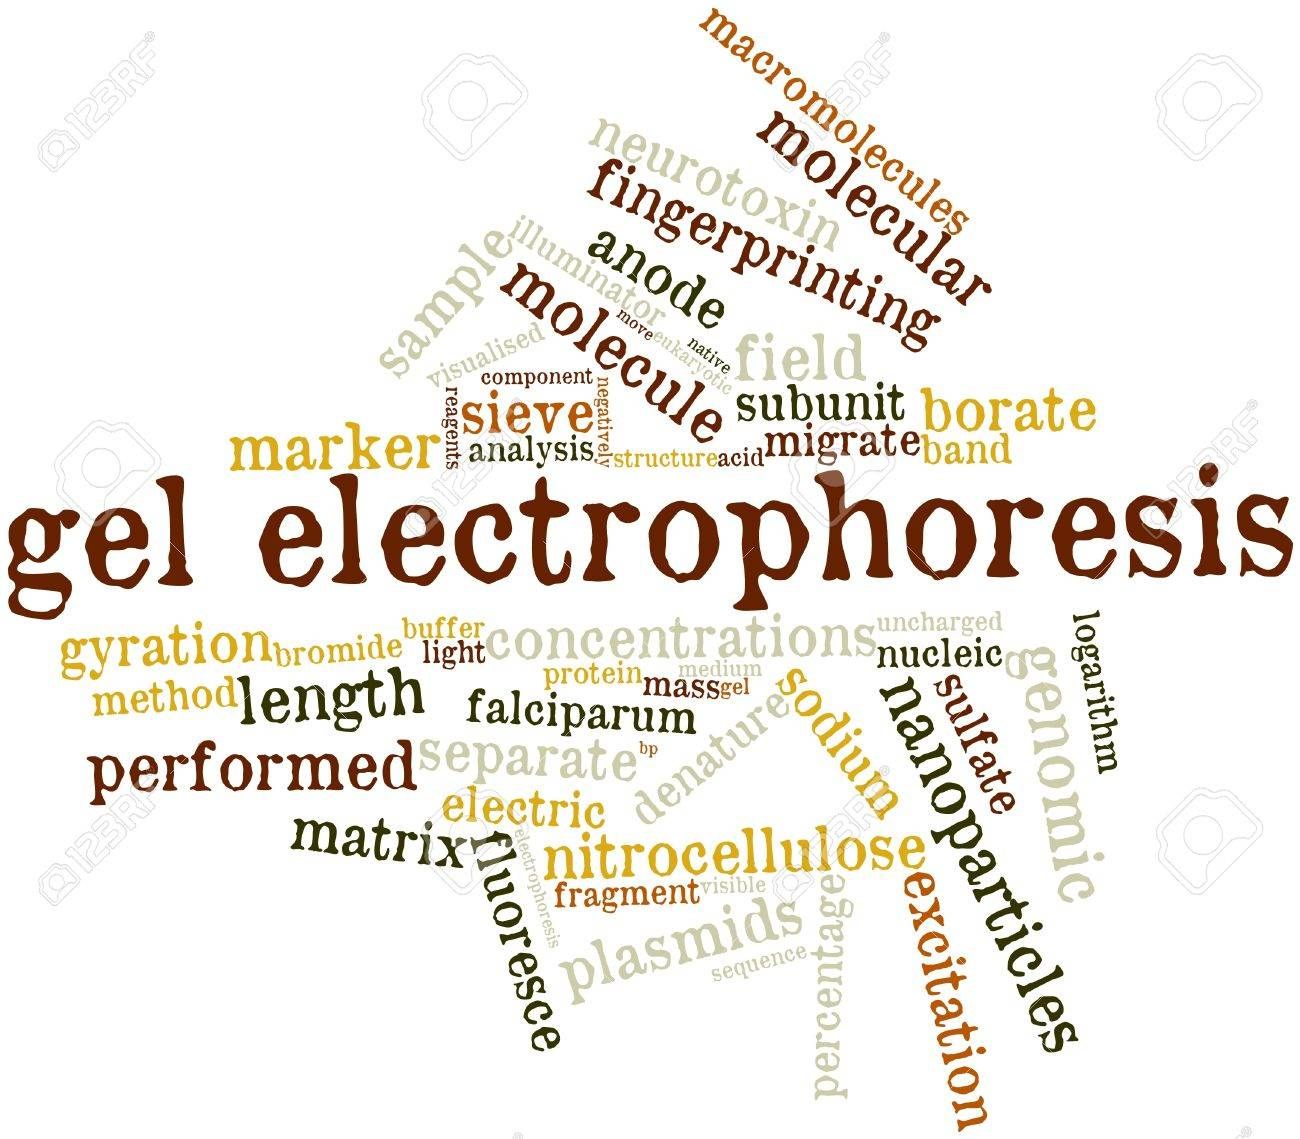 Electrophoresis Related